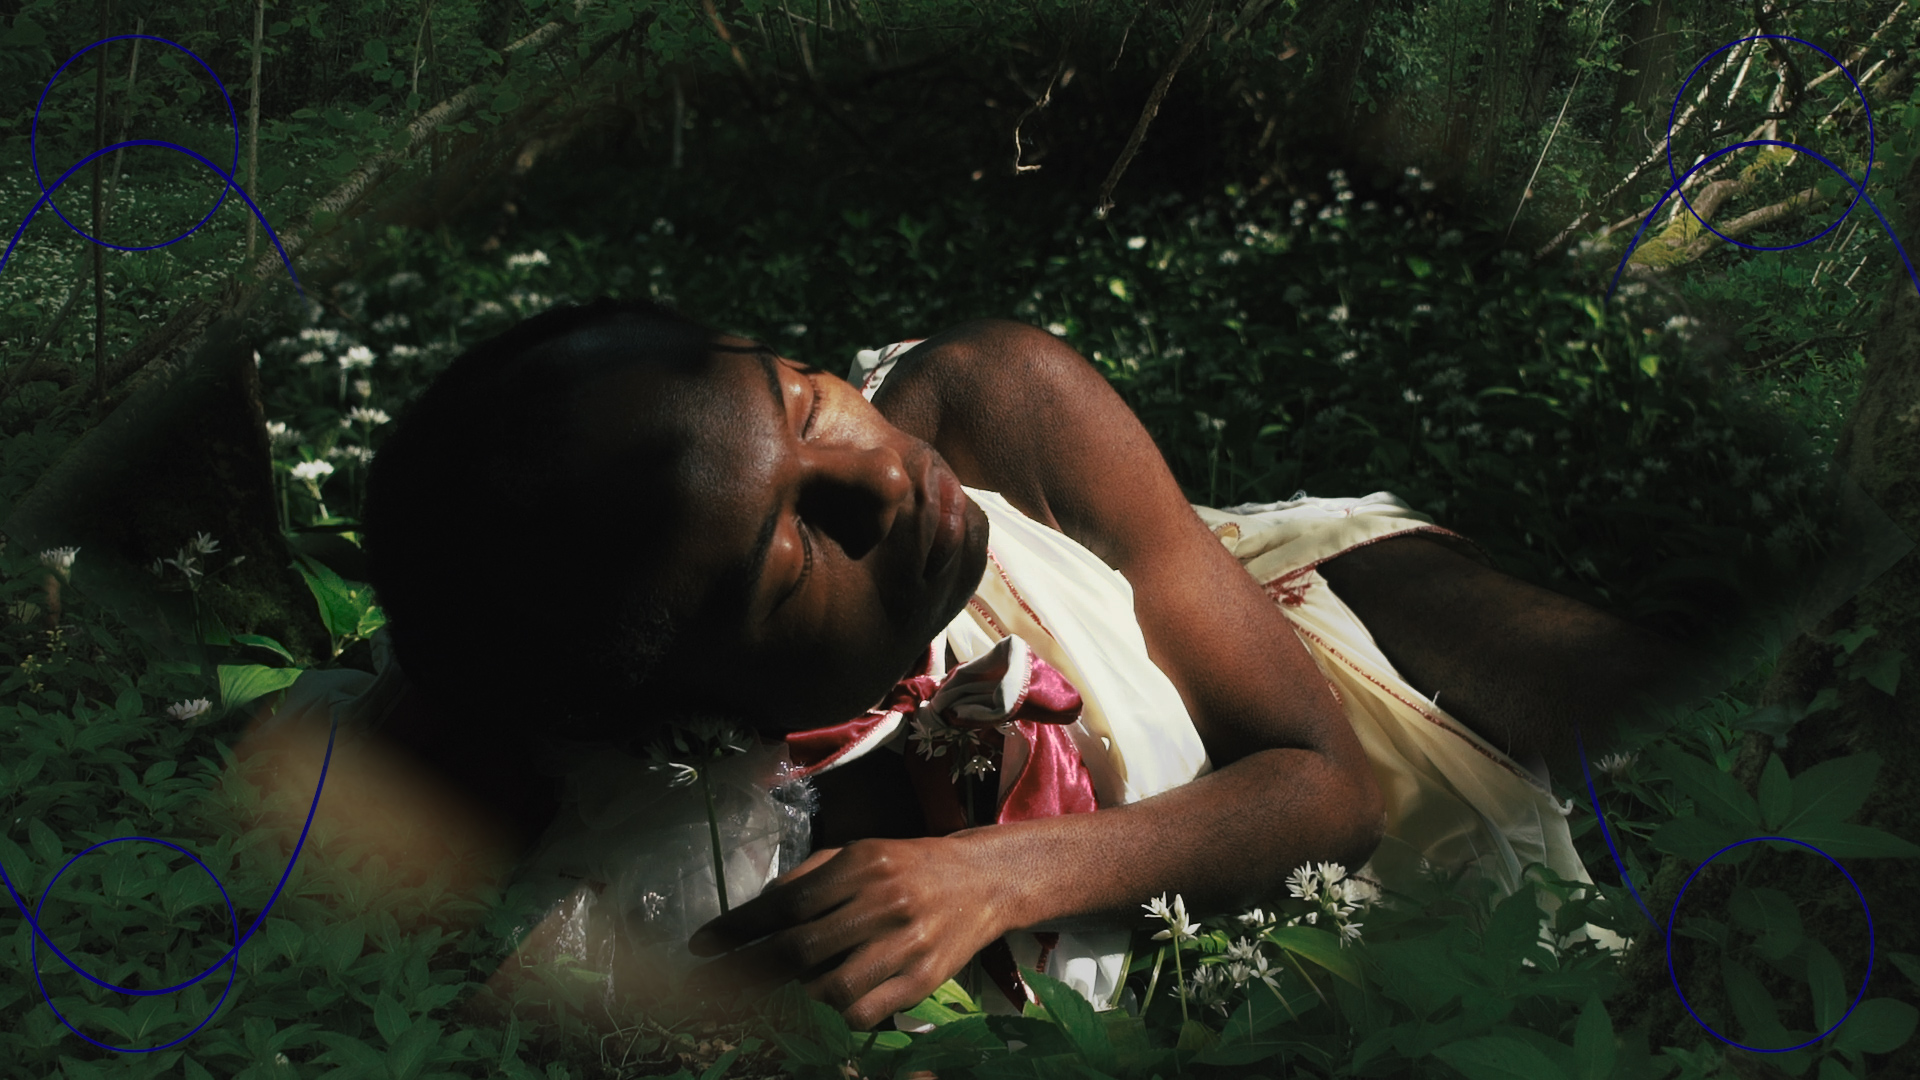 A close up of a person lying on the ground with their eyes closed. They're in a dark woodland under a small patch of sunlight. They're wearing white and surrounded by wild garlic flowers.